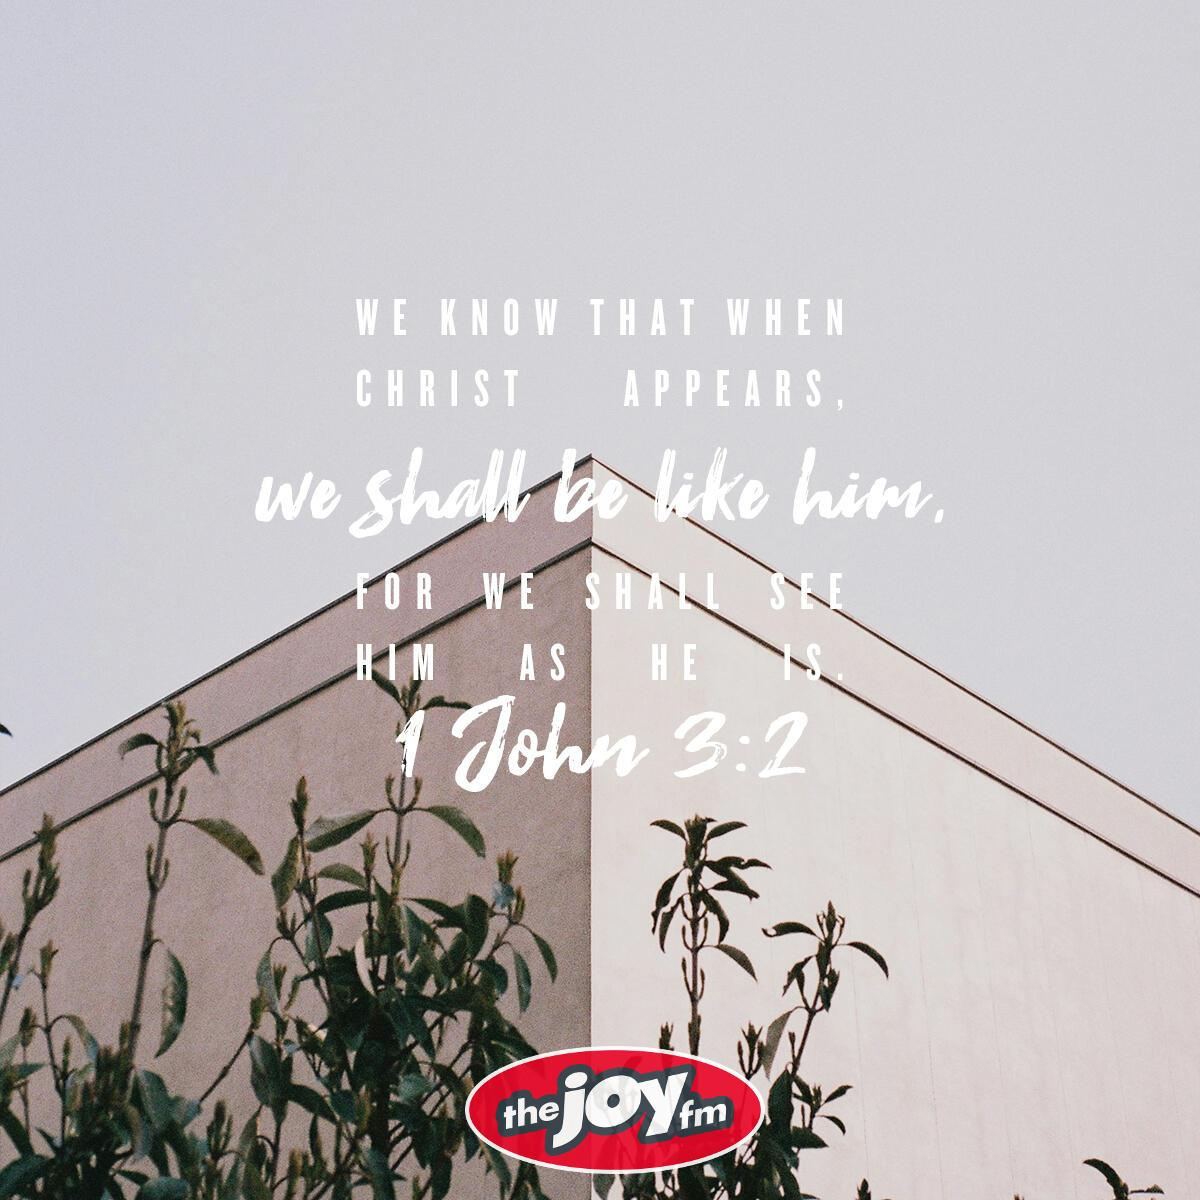 1 John 3:2 - Verse of the Day